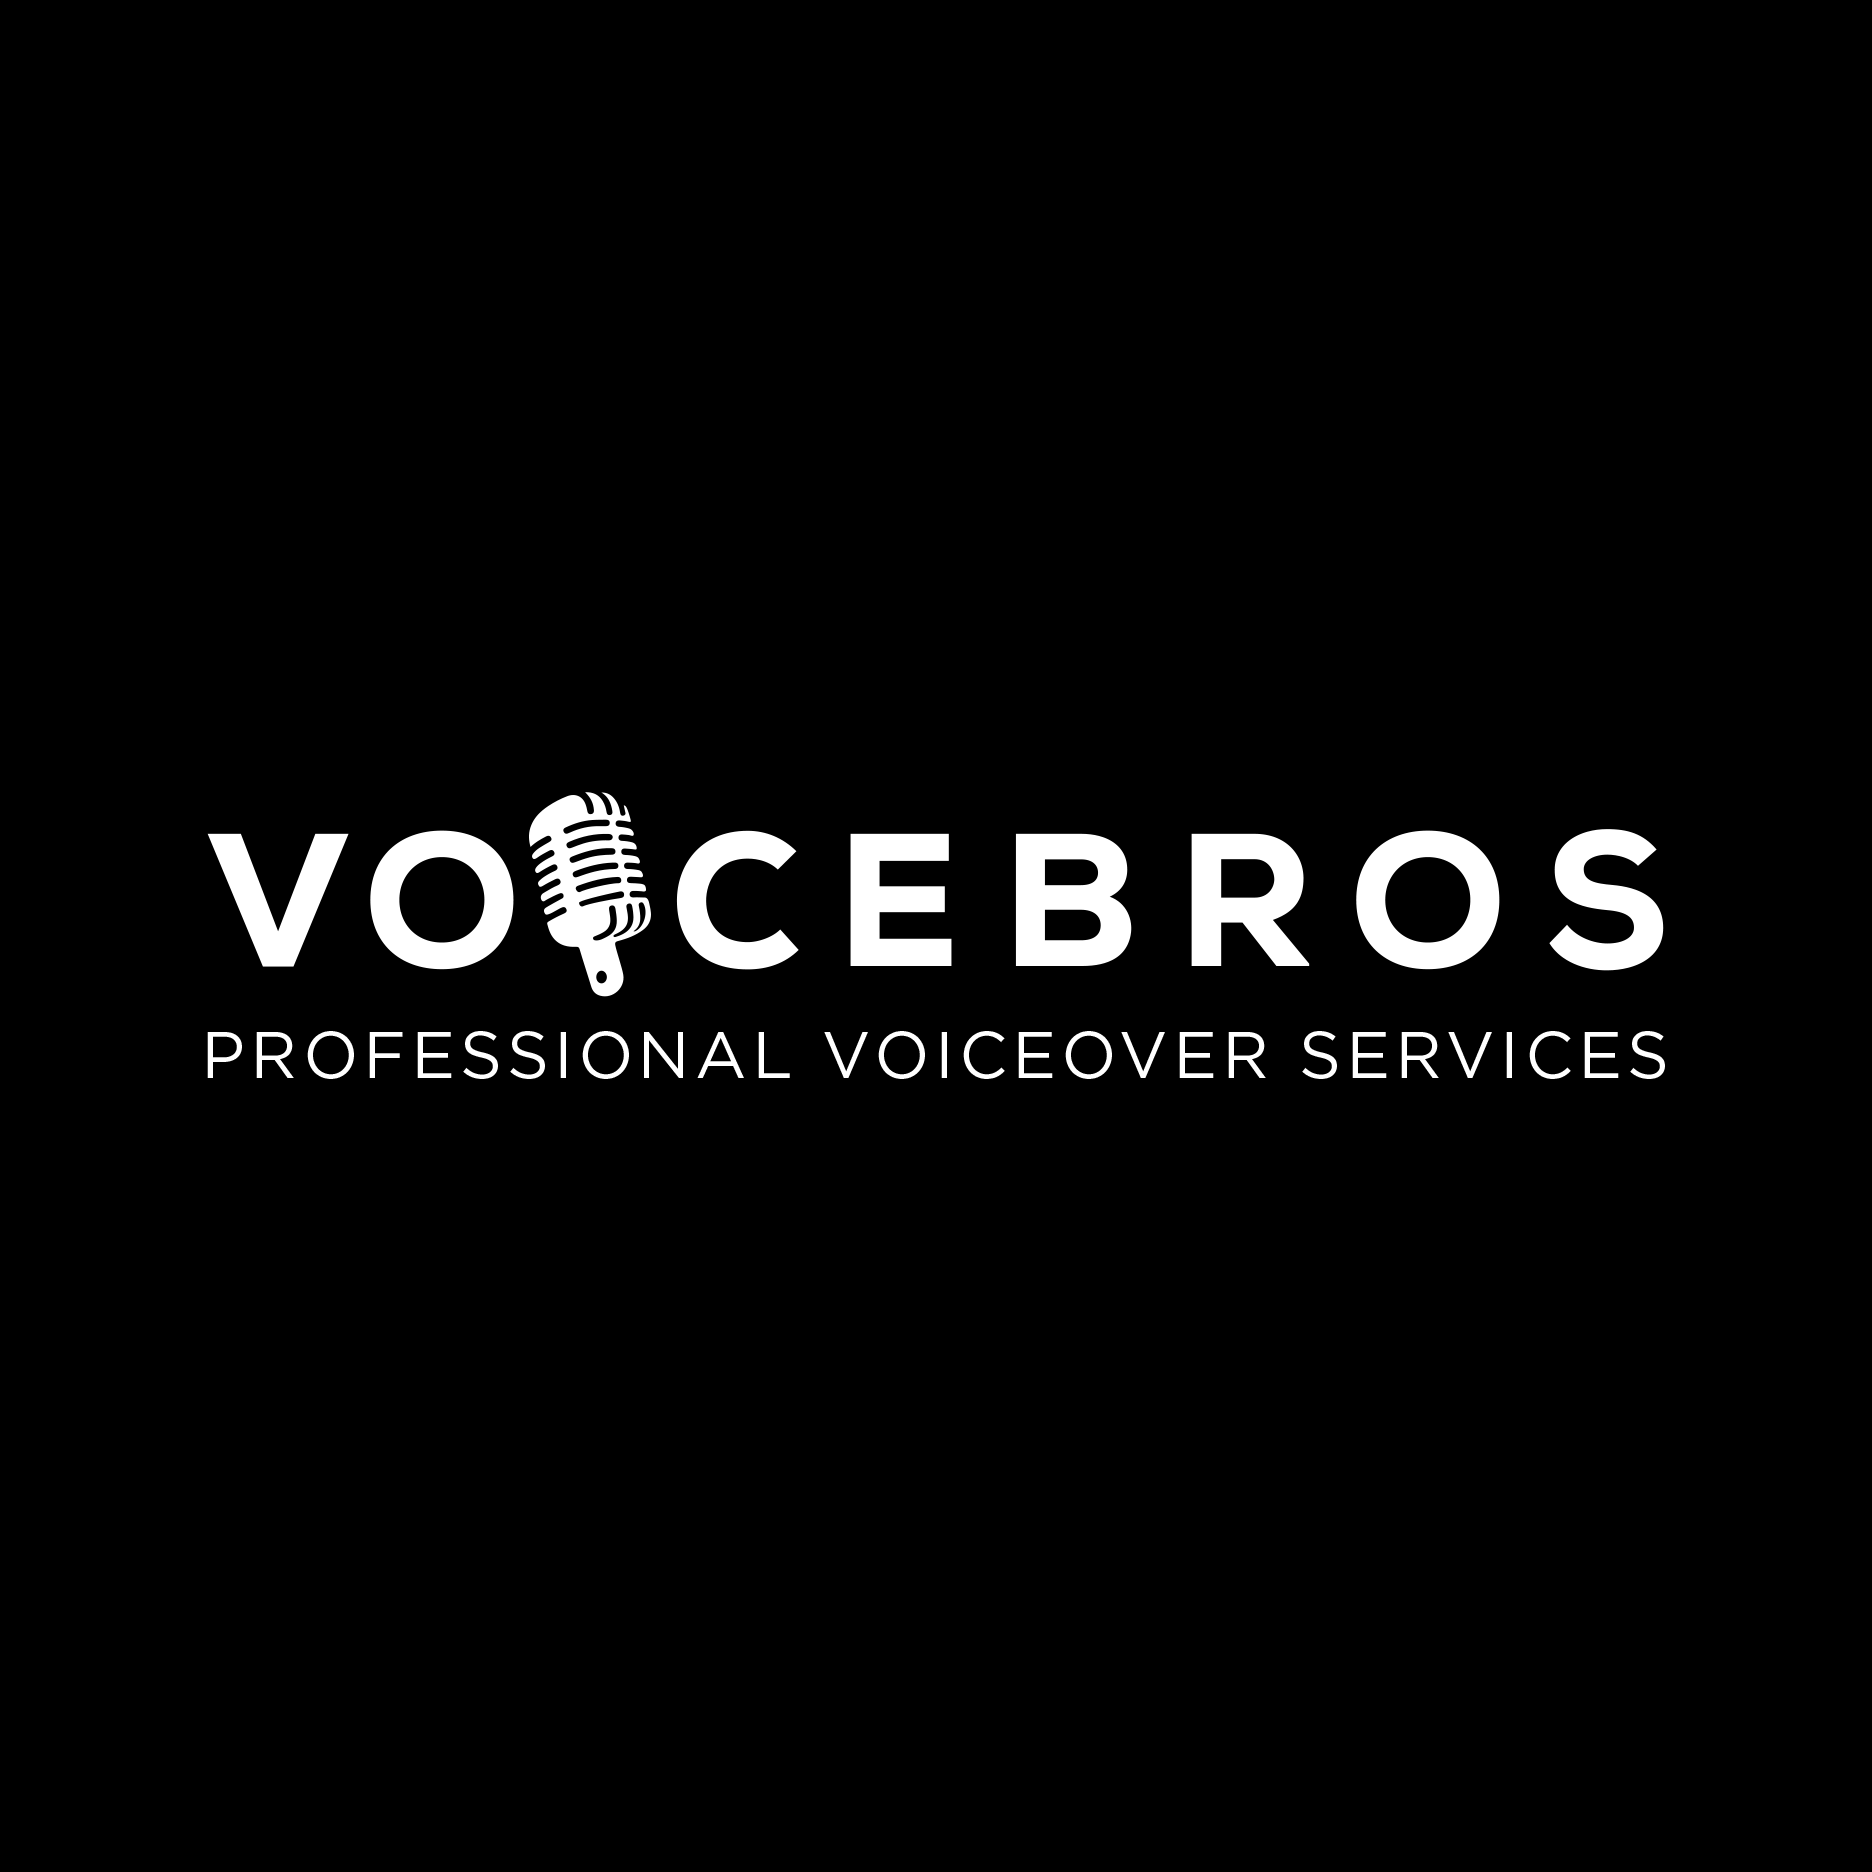 Kazuyo S. is a voice over actor